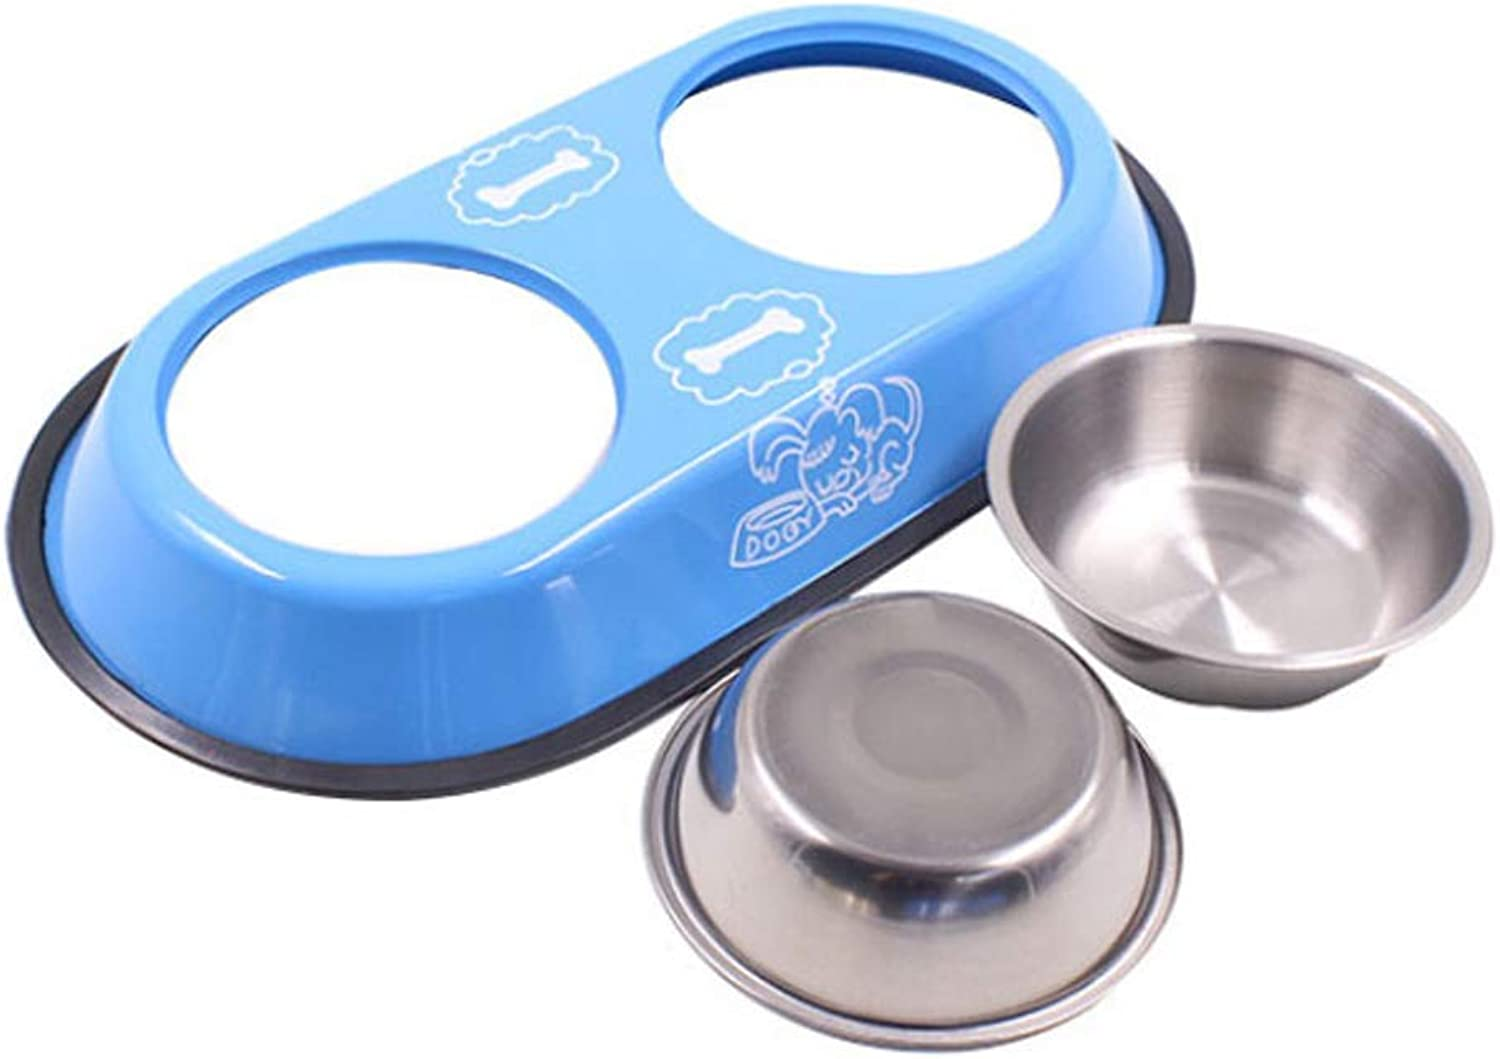 Ronghuafugui bluee Dog Bowl Stainless Steel Travel Feeding Feeder Water Bowl For Pet Dog Cat Puppy Food Bowl Water Dish (color   S)